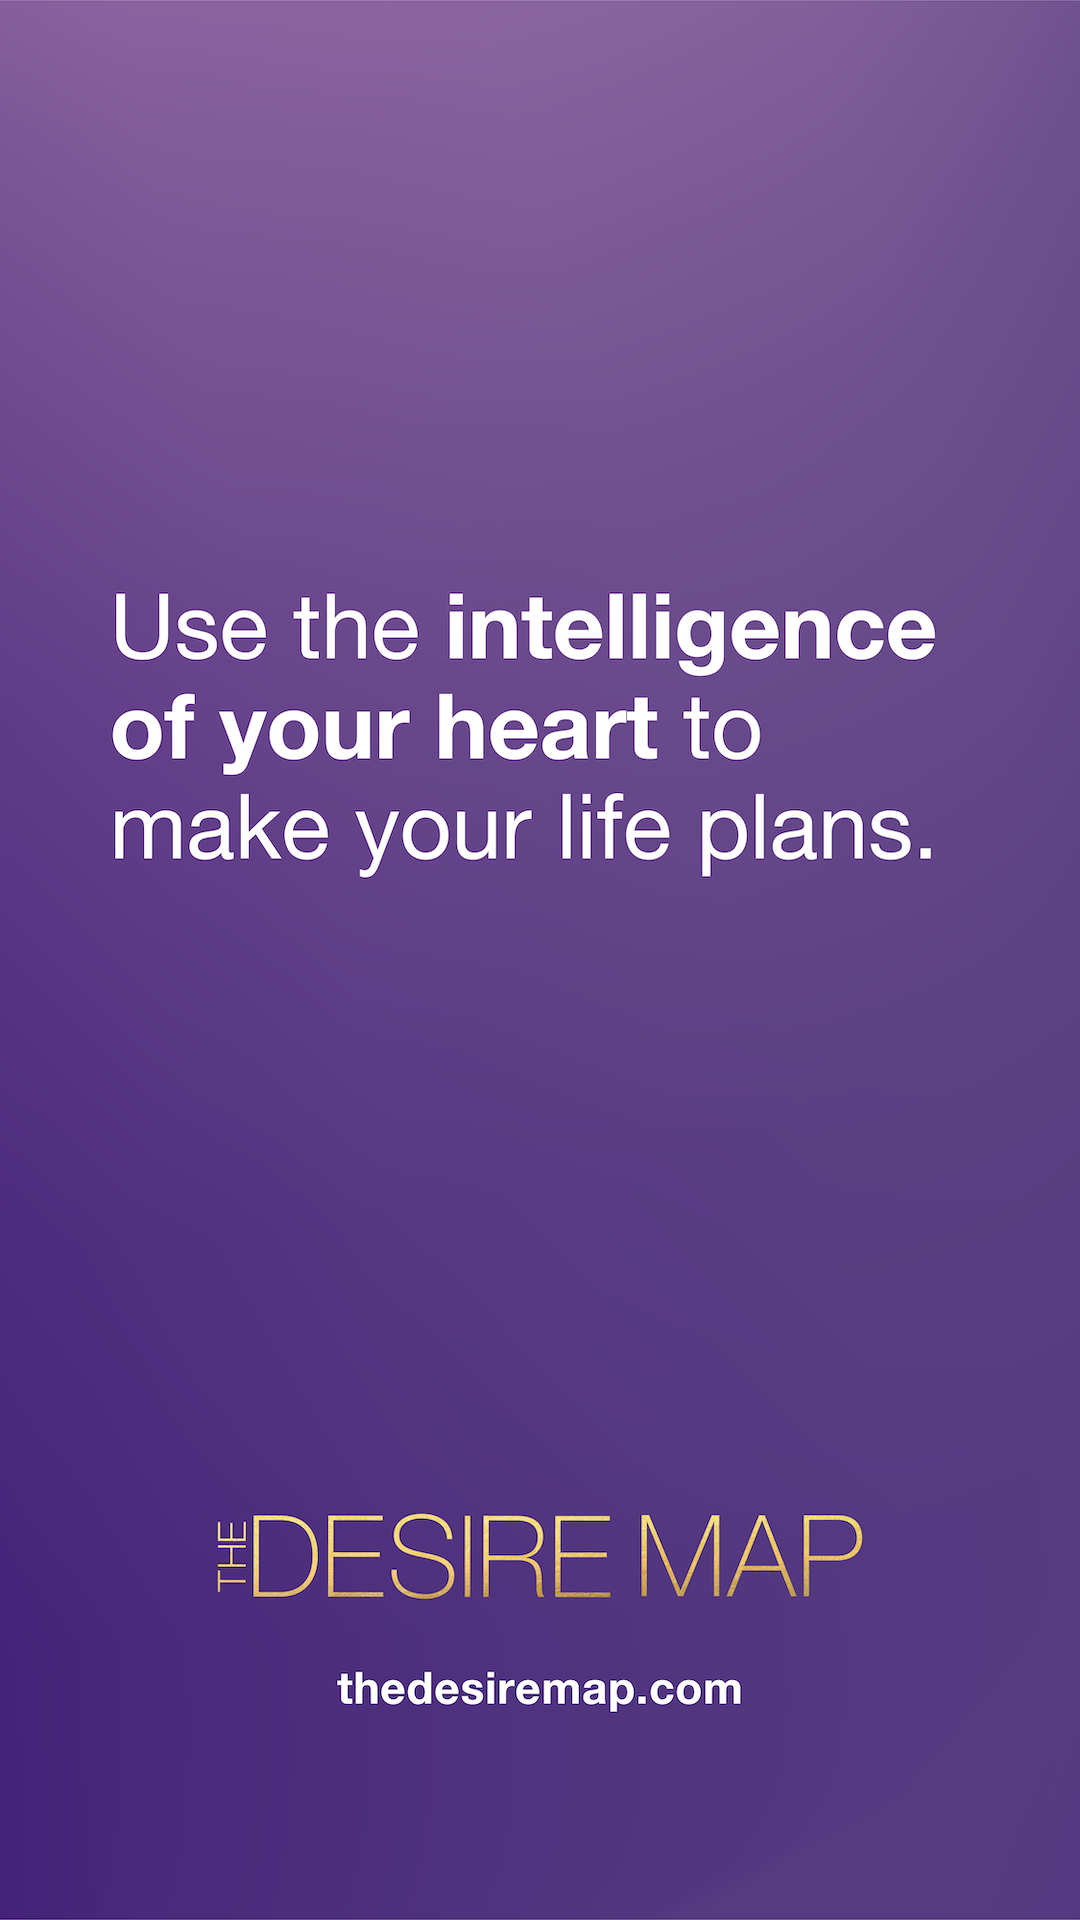 Use the intelligence of your heart to make your life plans